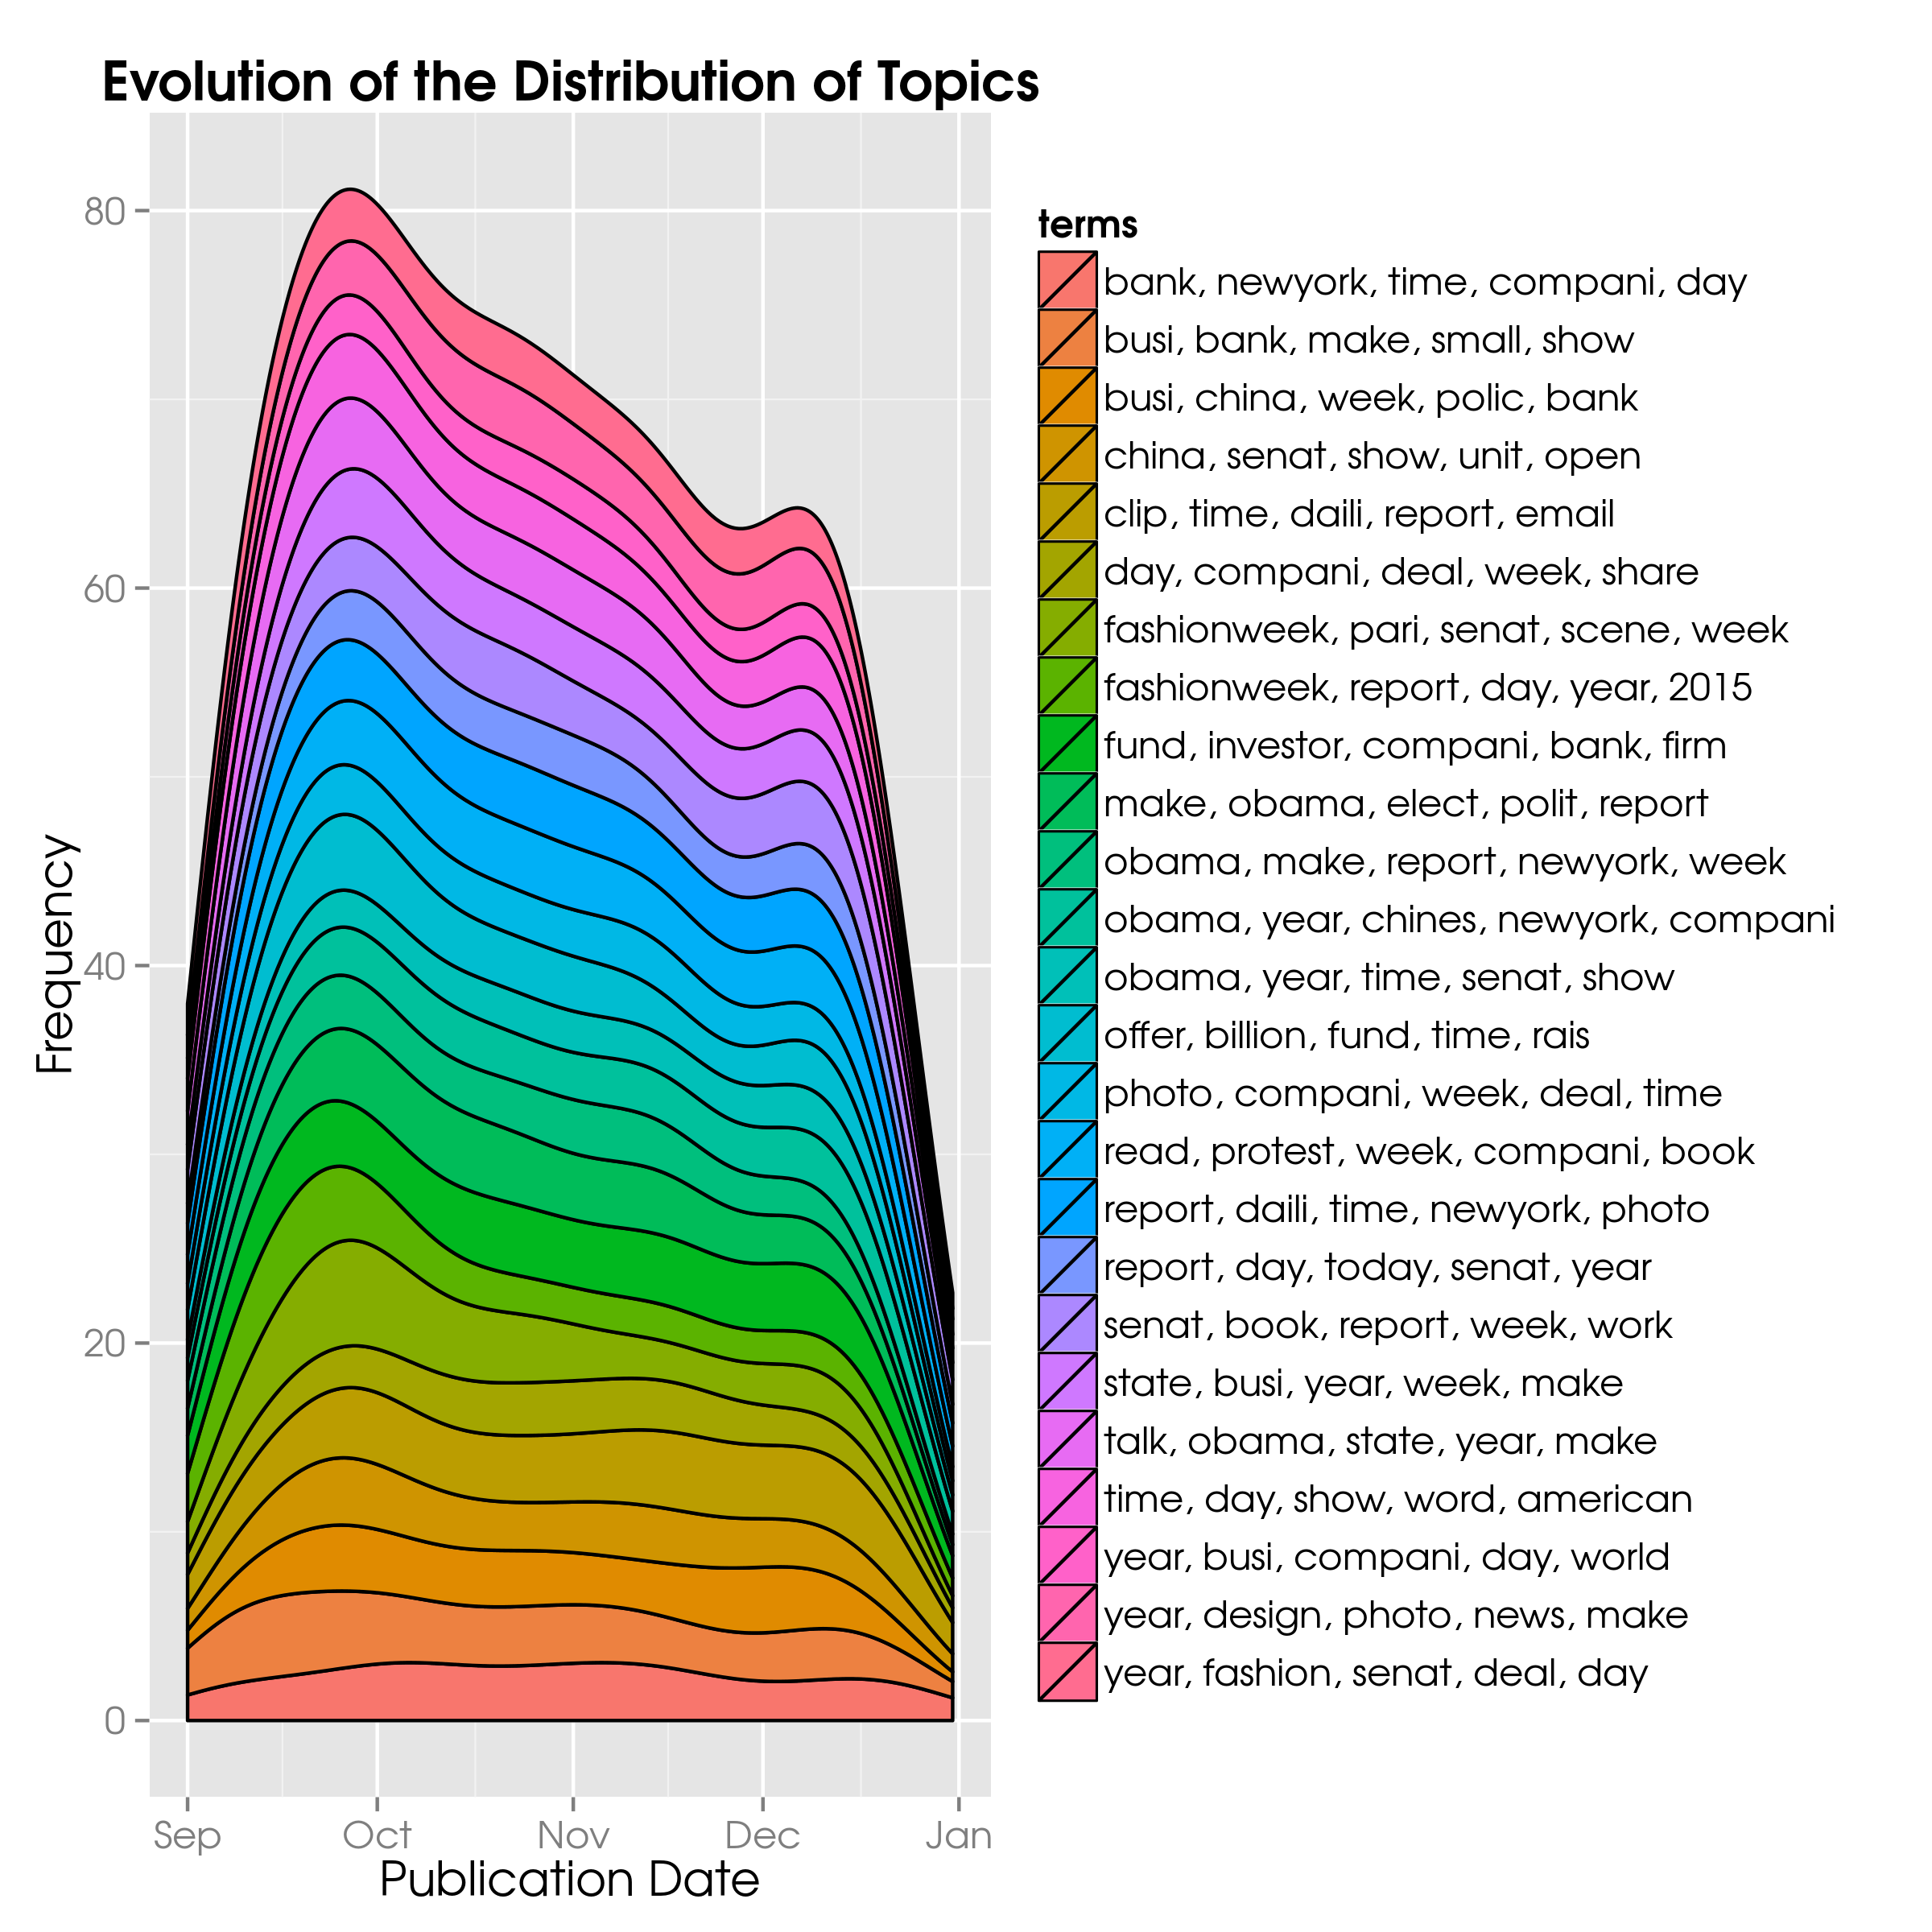 The Evolution of Topics and Their Counts